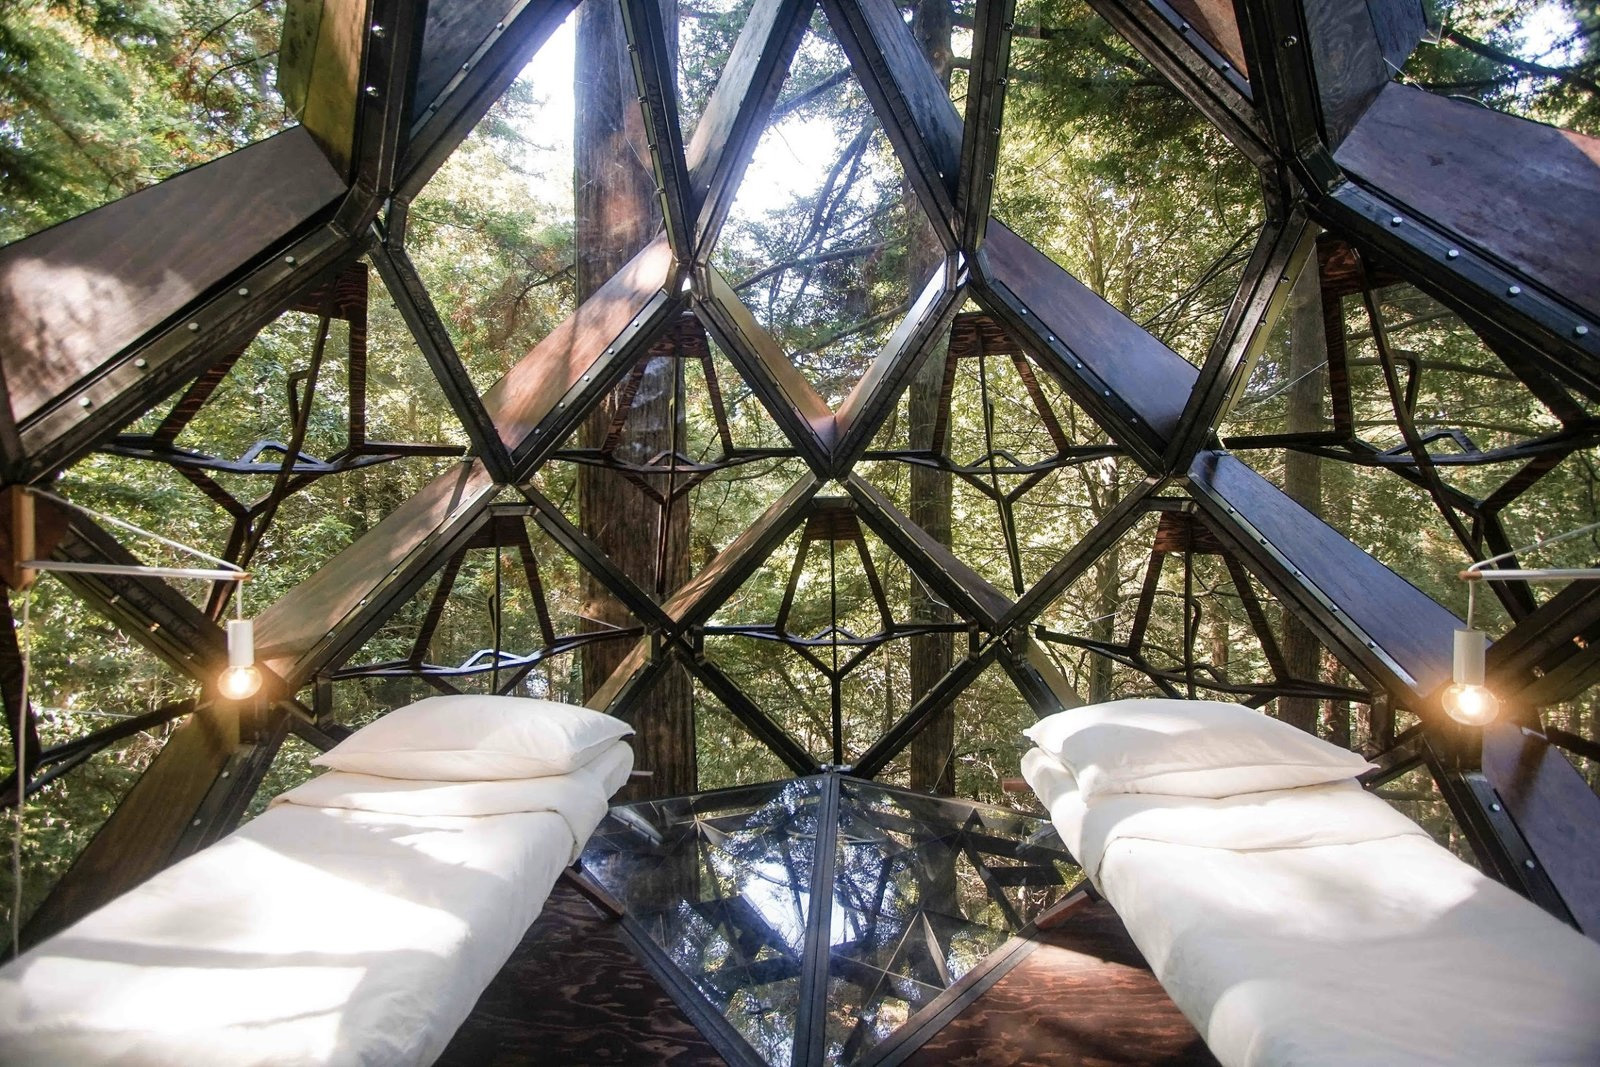 This Pinecone treehouse could be yours for $150,000